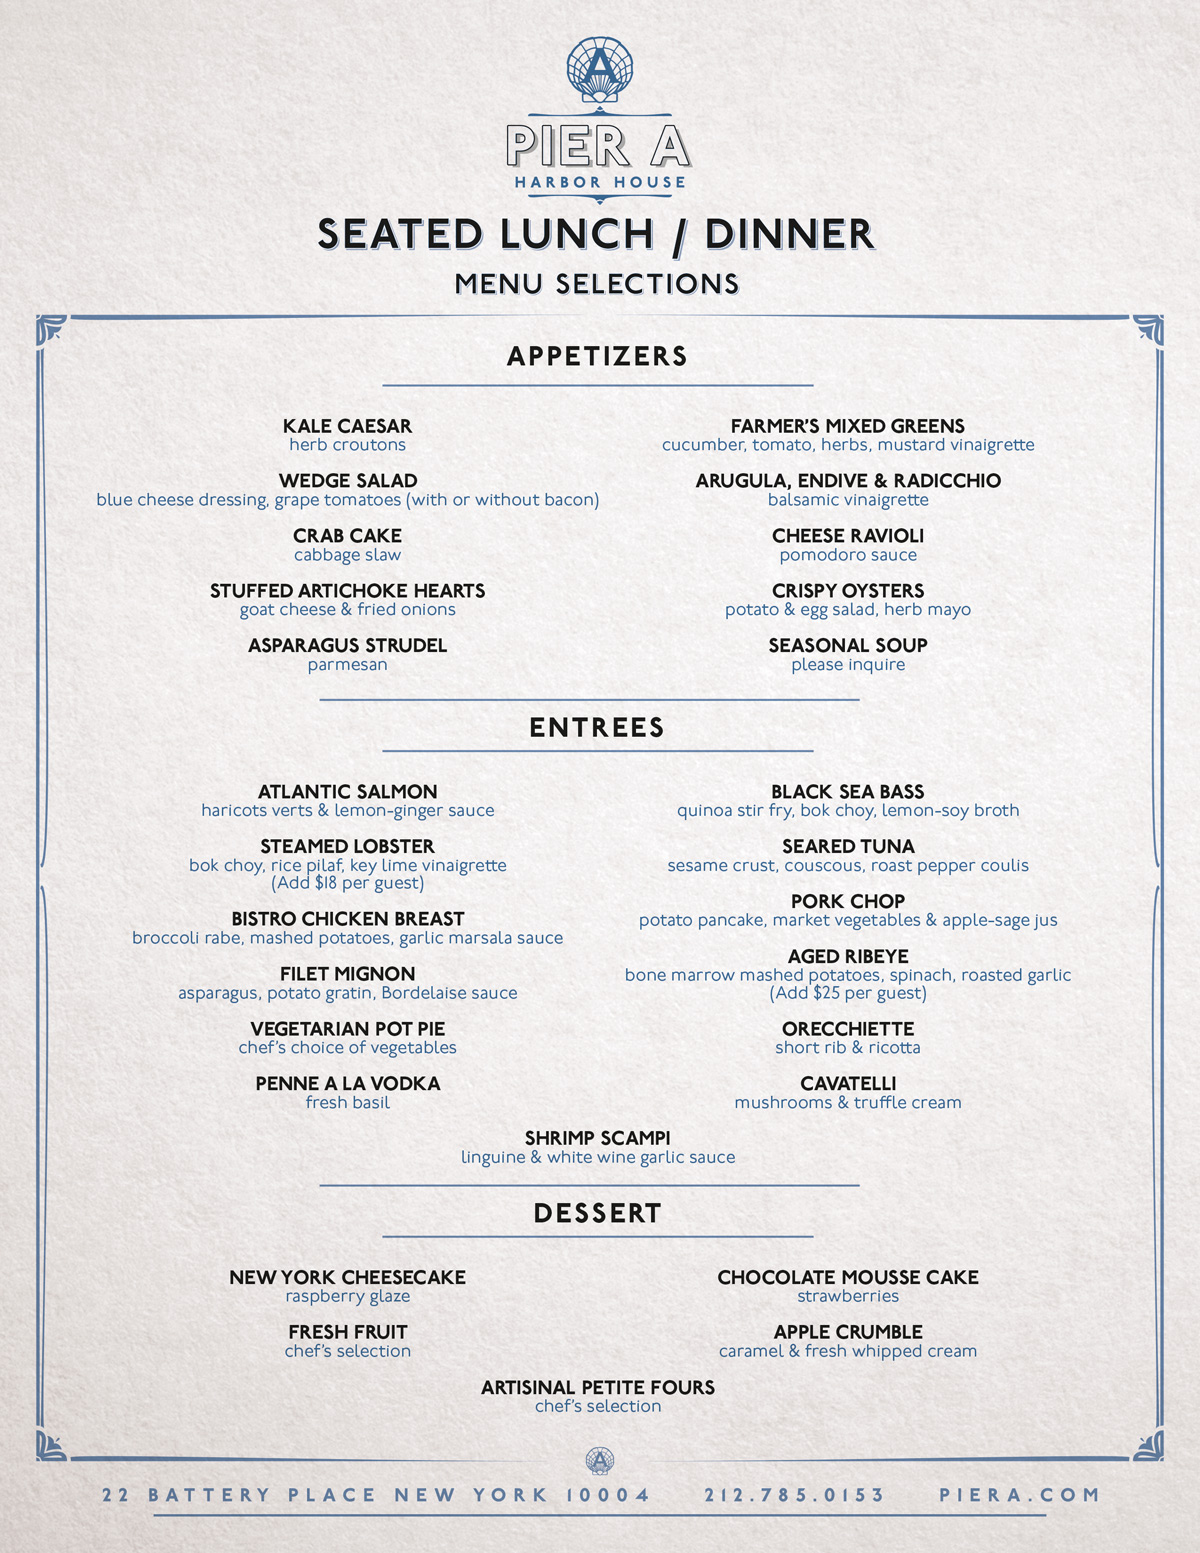 seated-lunch-dinner-selections-low-res-proposal.jpg